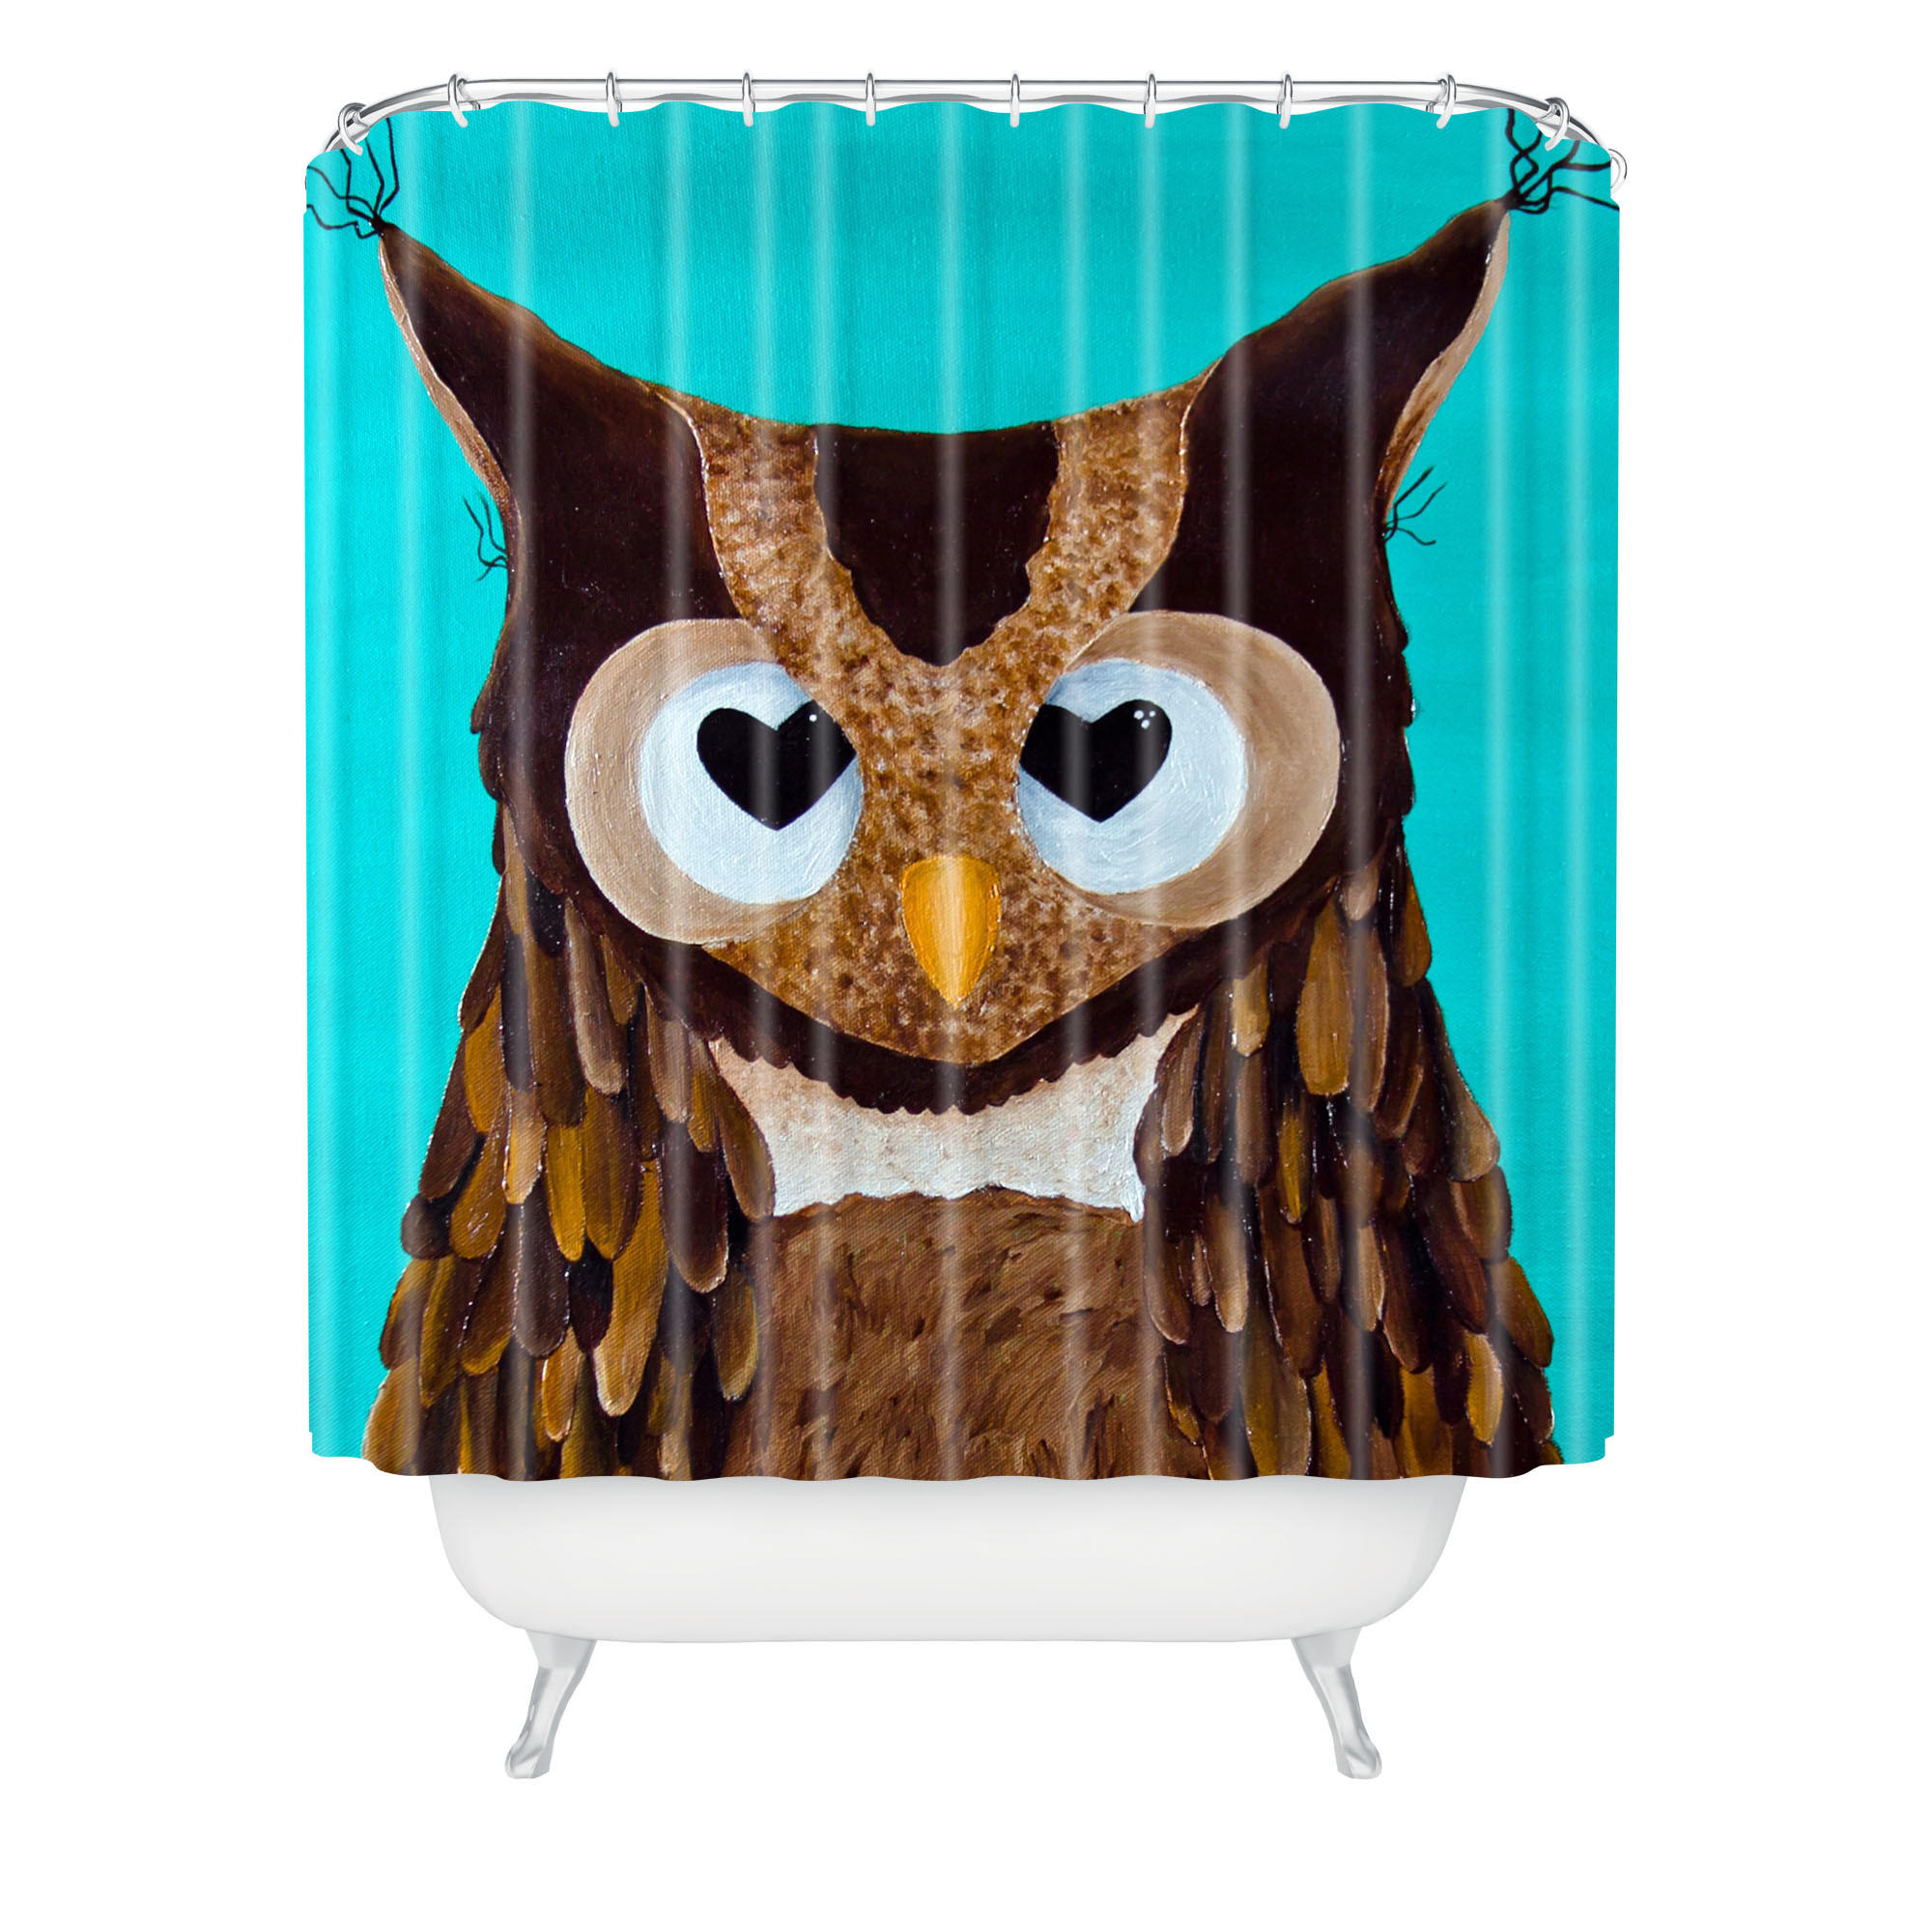 Owl Bathroom Mandy Hazell Owl Love You Shower Curtain From Deny Designs